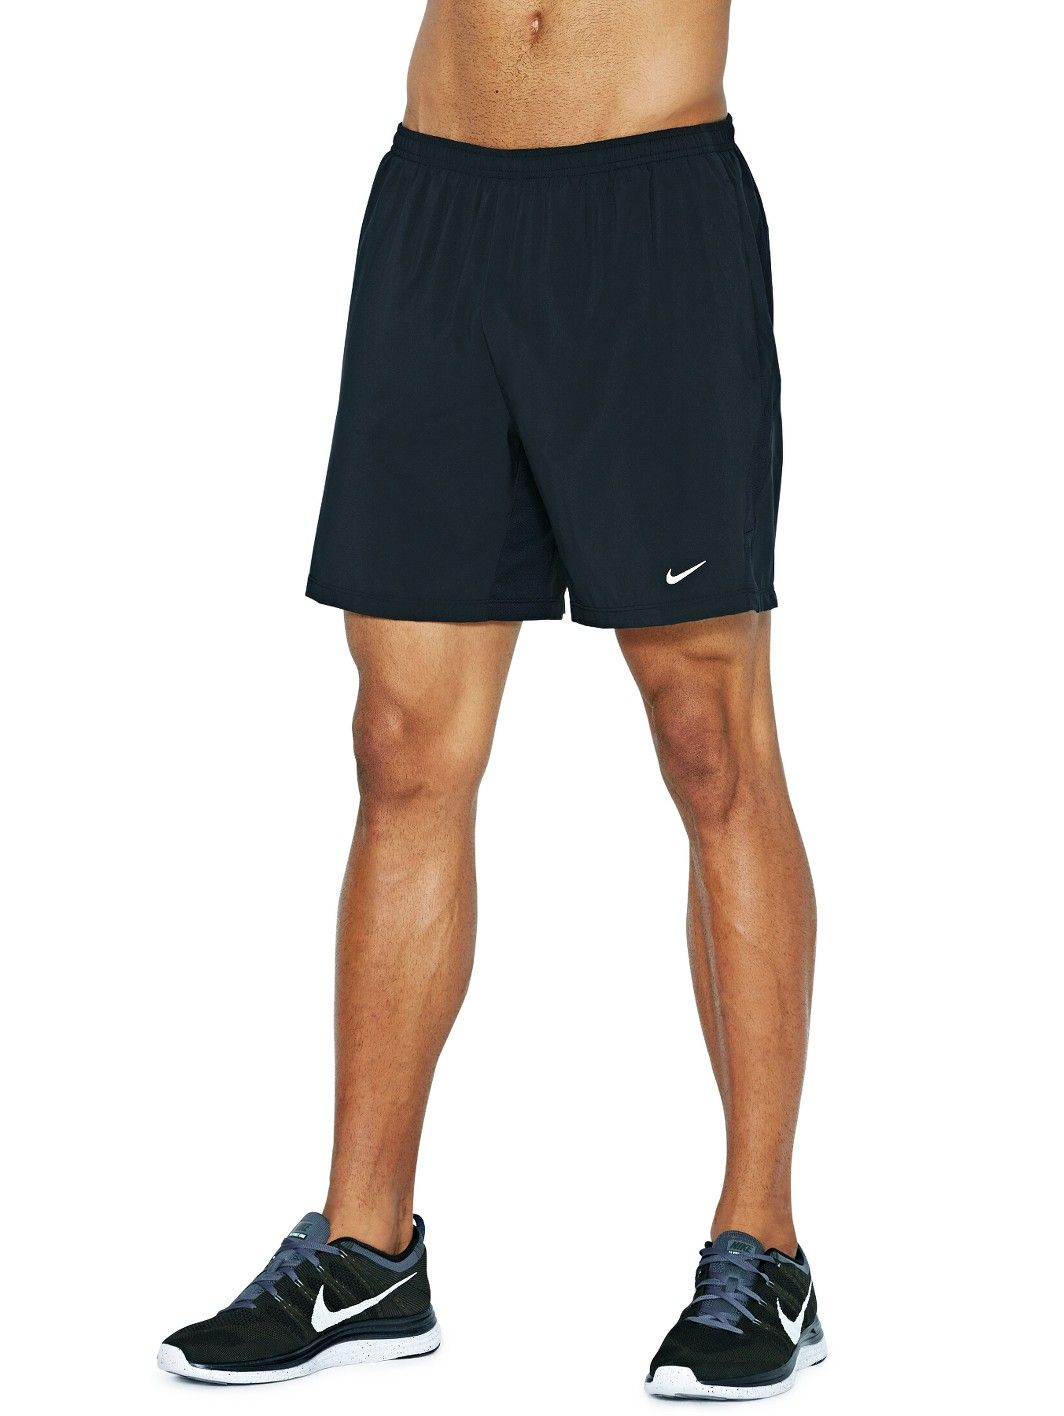 753e46b763bb Nike Mens 7 inch Distance Running Shorts